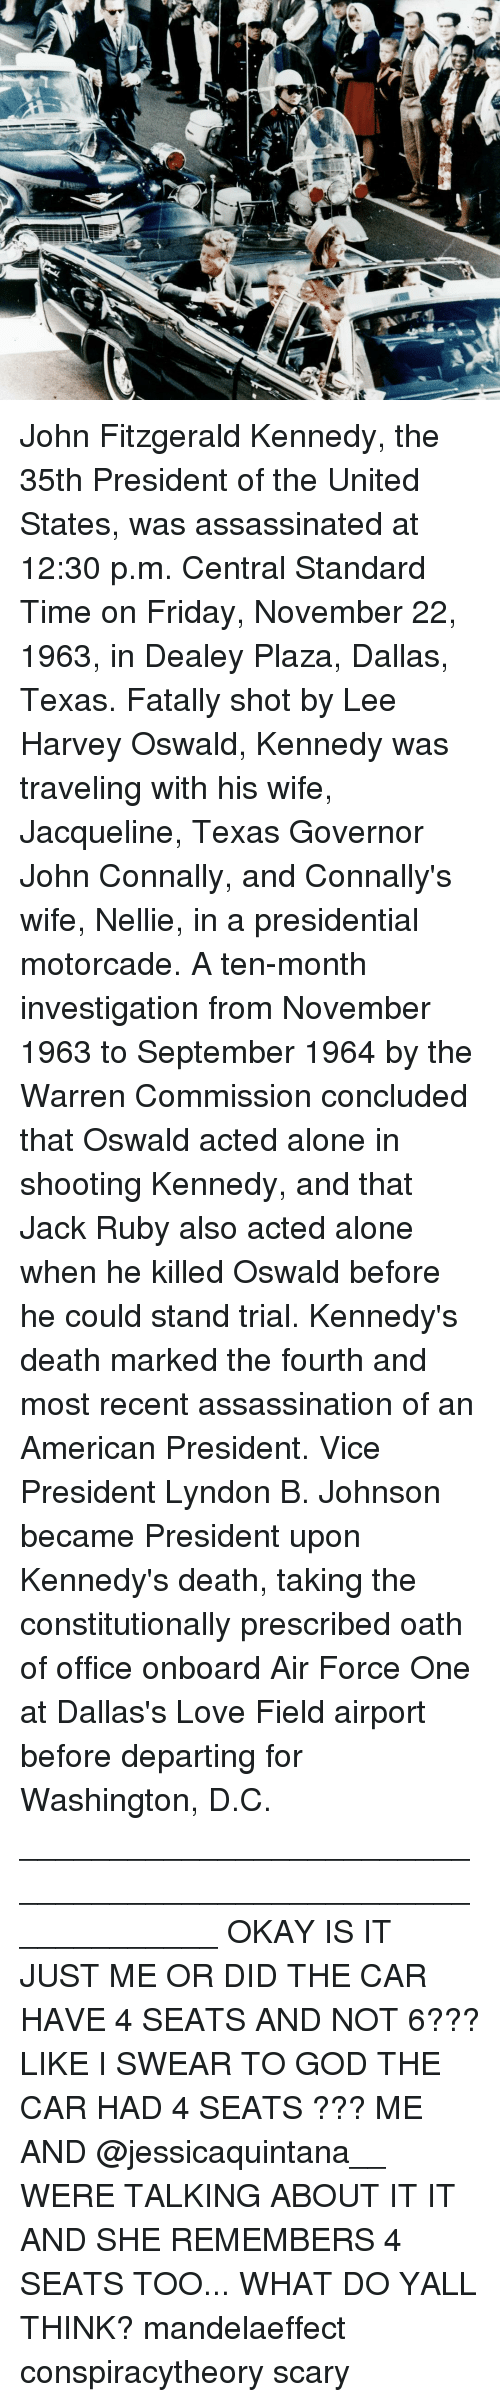 an overview of the death of president john f kennedy by lee harvey oswald and the warren commission  Read a free sample or buy lee harvey oswald:  after he shot president john f kennedy  americans are still skeptical of the warren commission.